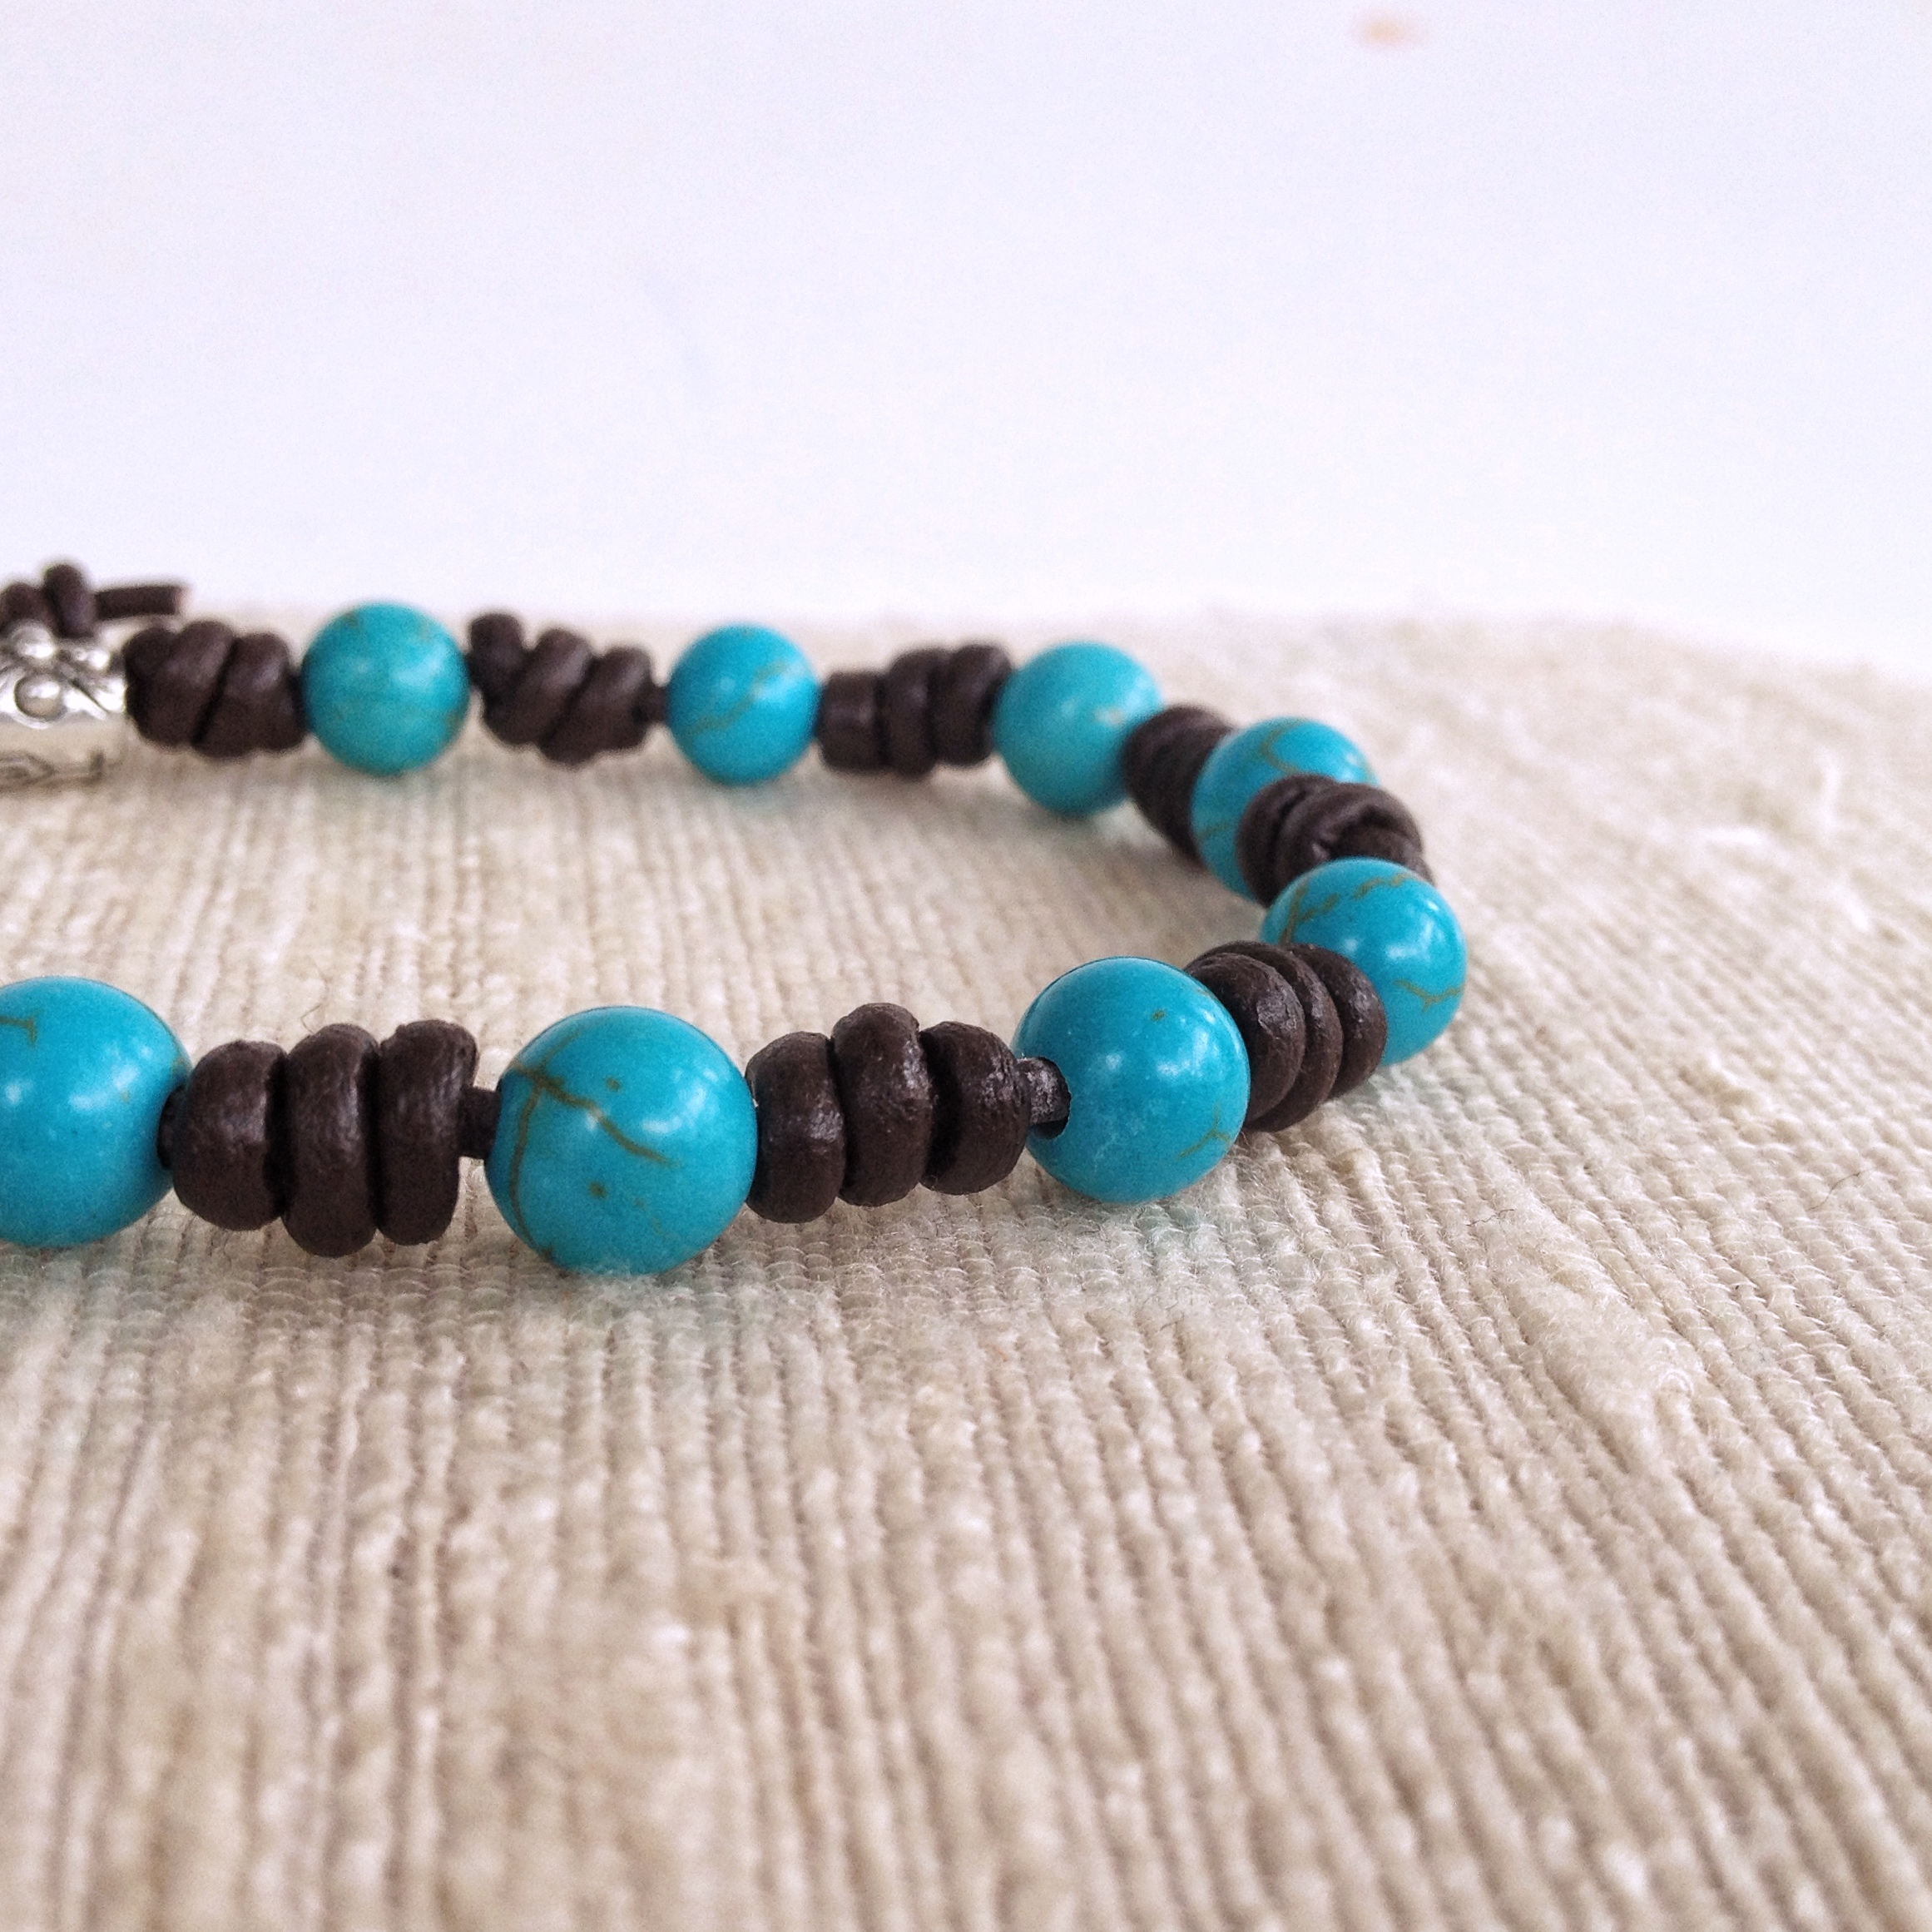 Leather Rosary Bracelet with turquoise beads